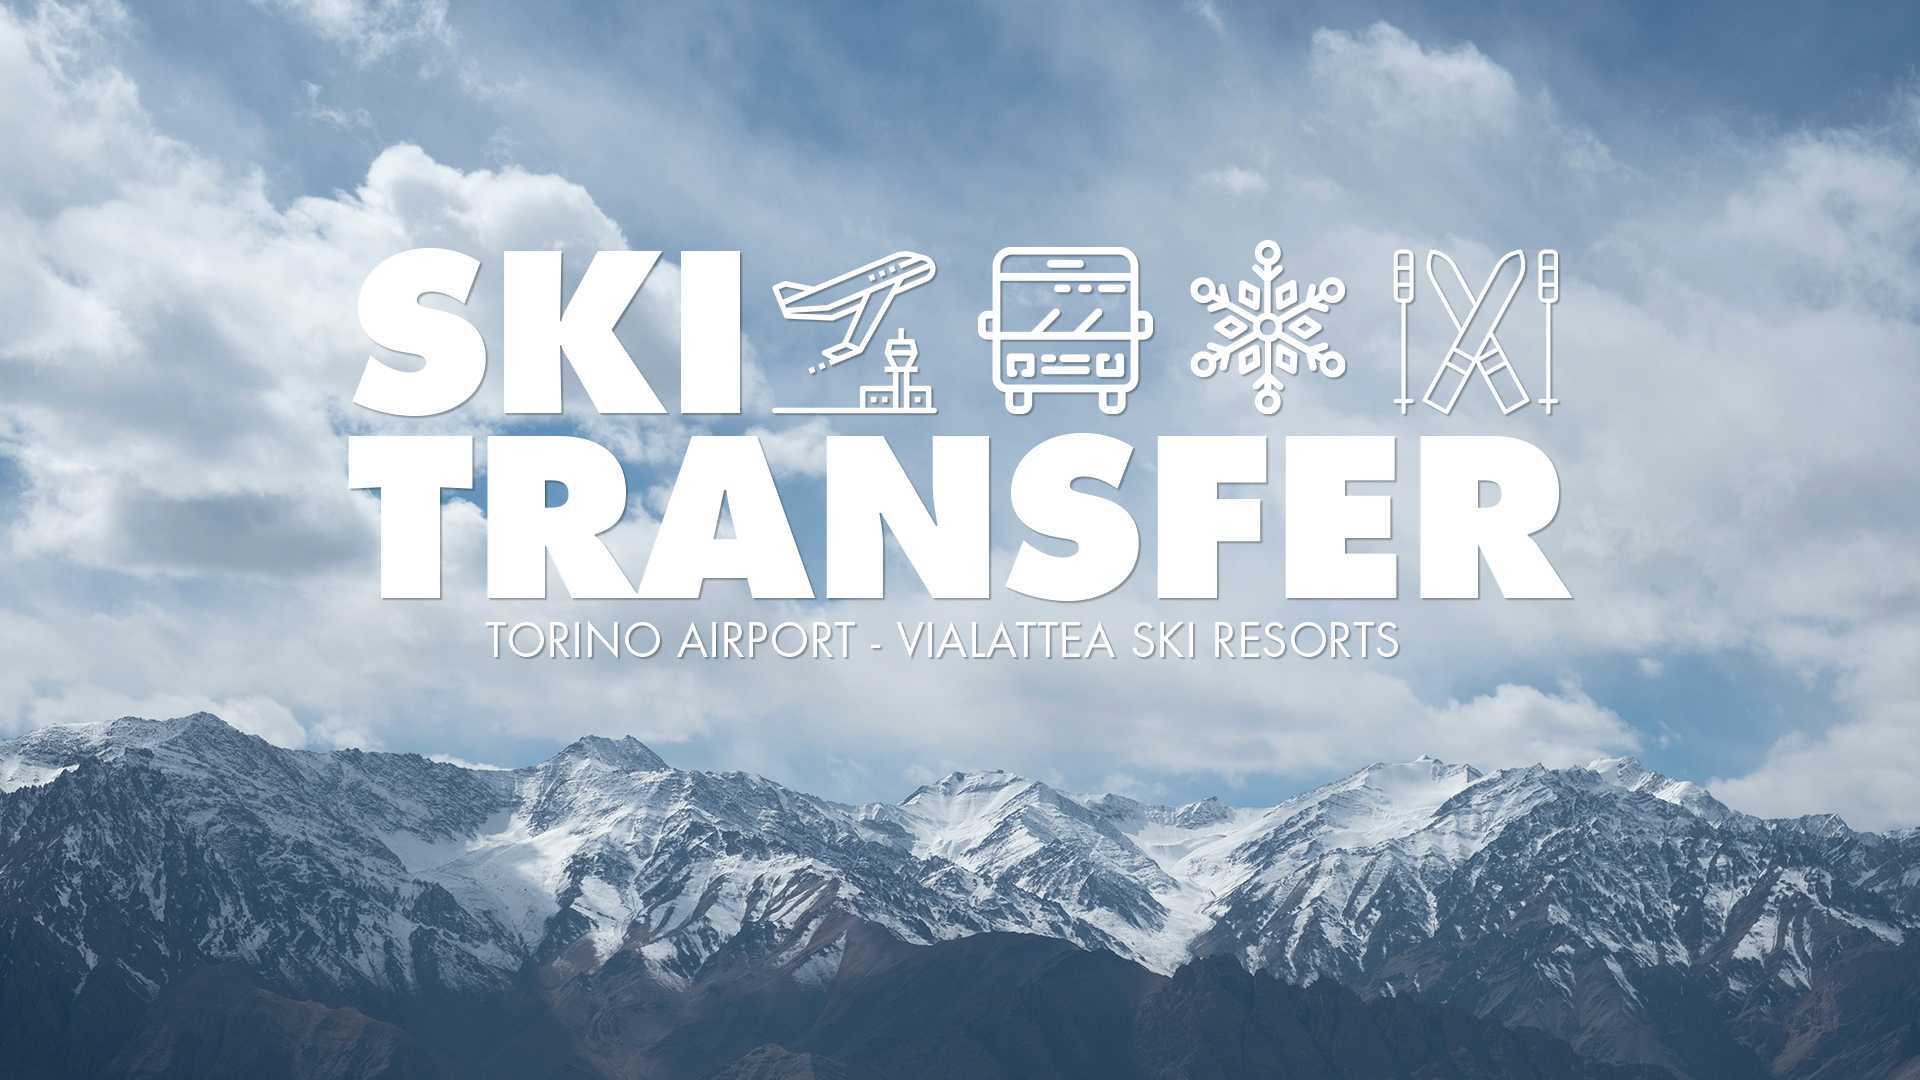 ski transfer - bus connection from torino airport to oulx, bardonecchia, cesana, sestriere e pragelato.